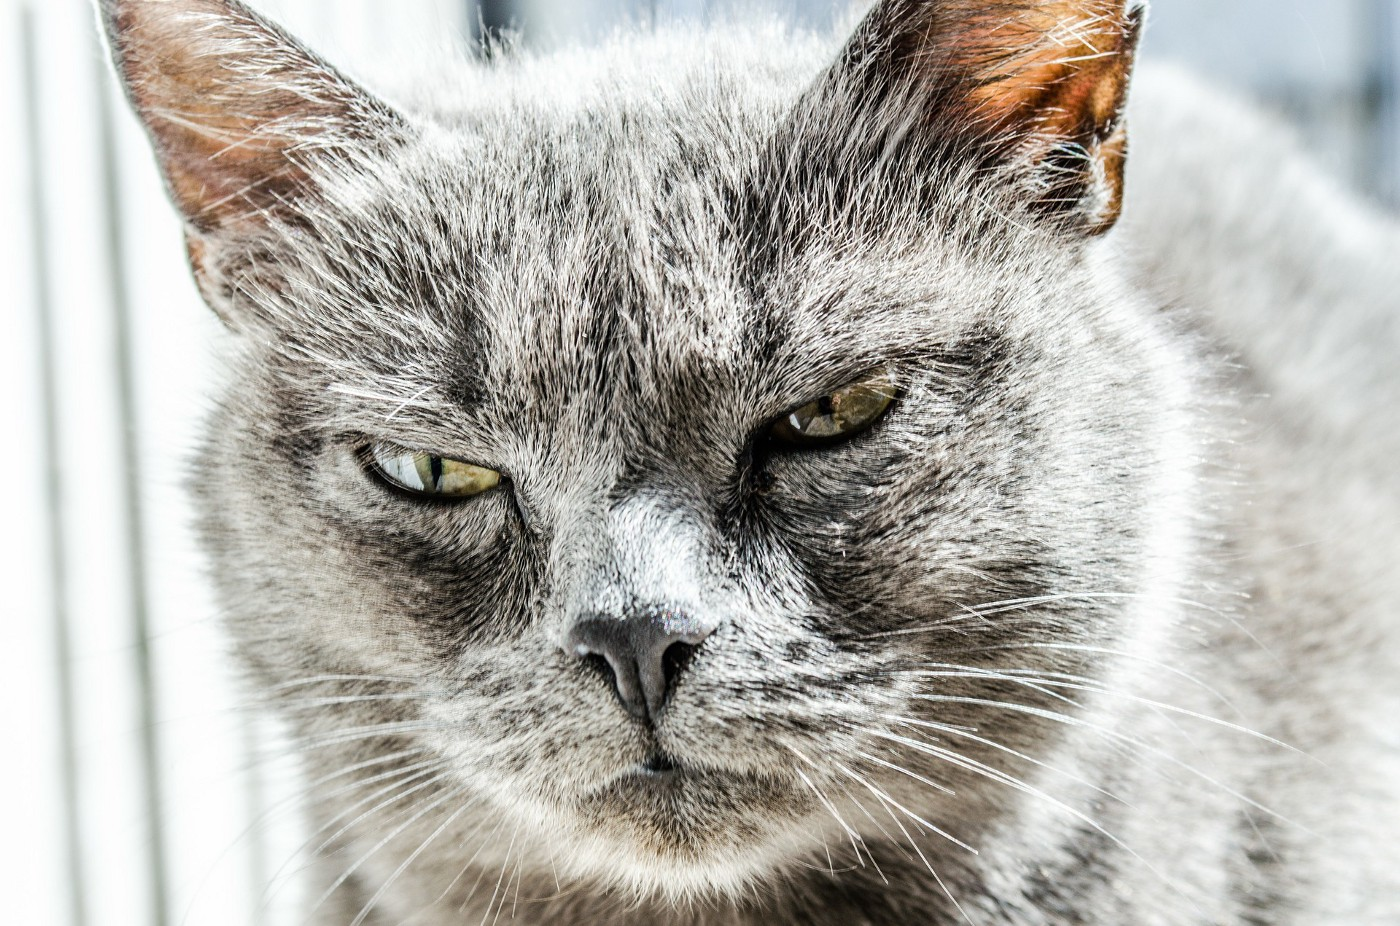 A slit-eyed grey cat looks peeved.